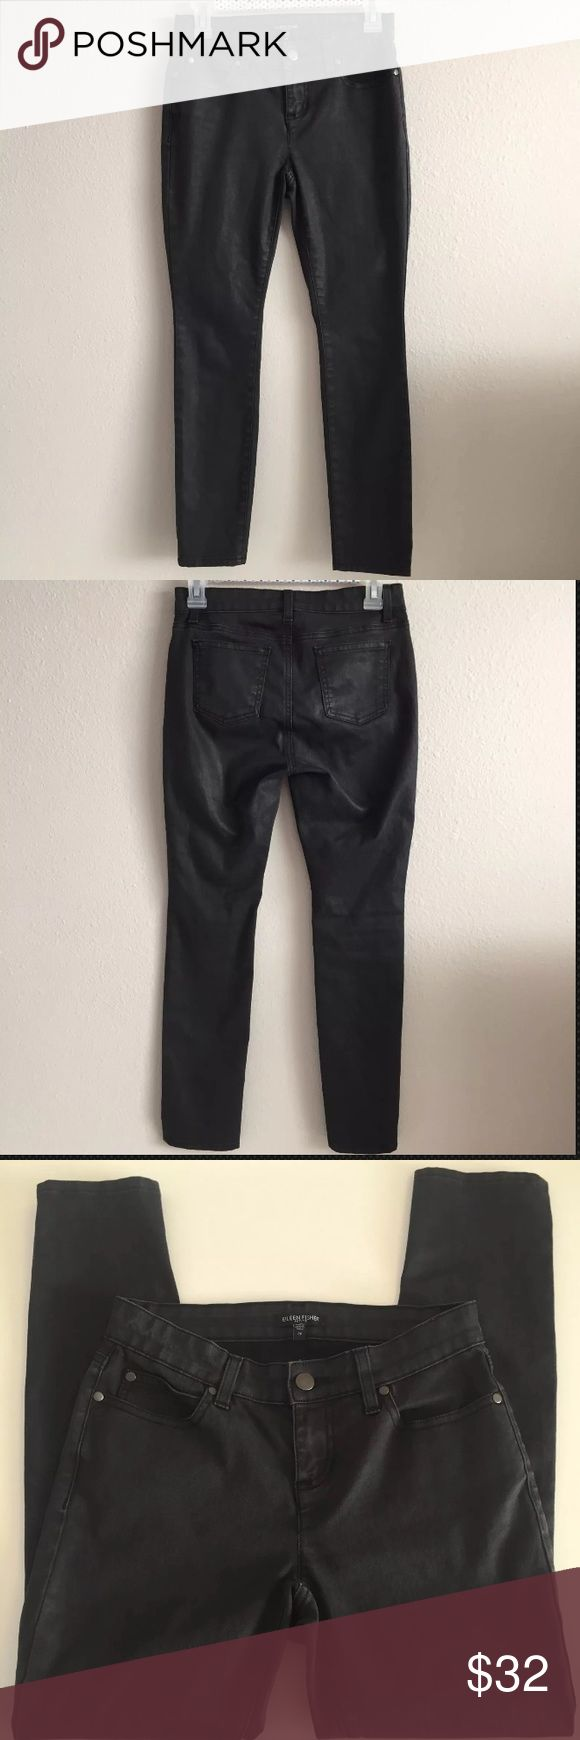 EILEEN FISHER coated black Skinny Slim jeans 2 P Good used condition. Has signs of wash and wear Eileen Fisher Jeans Skinny